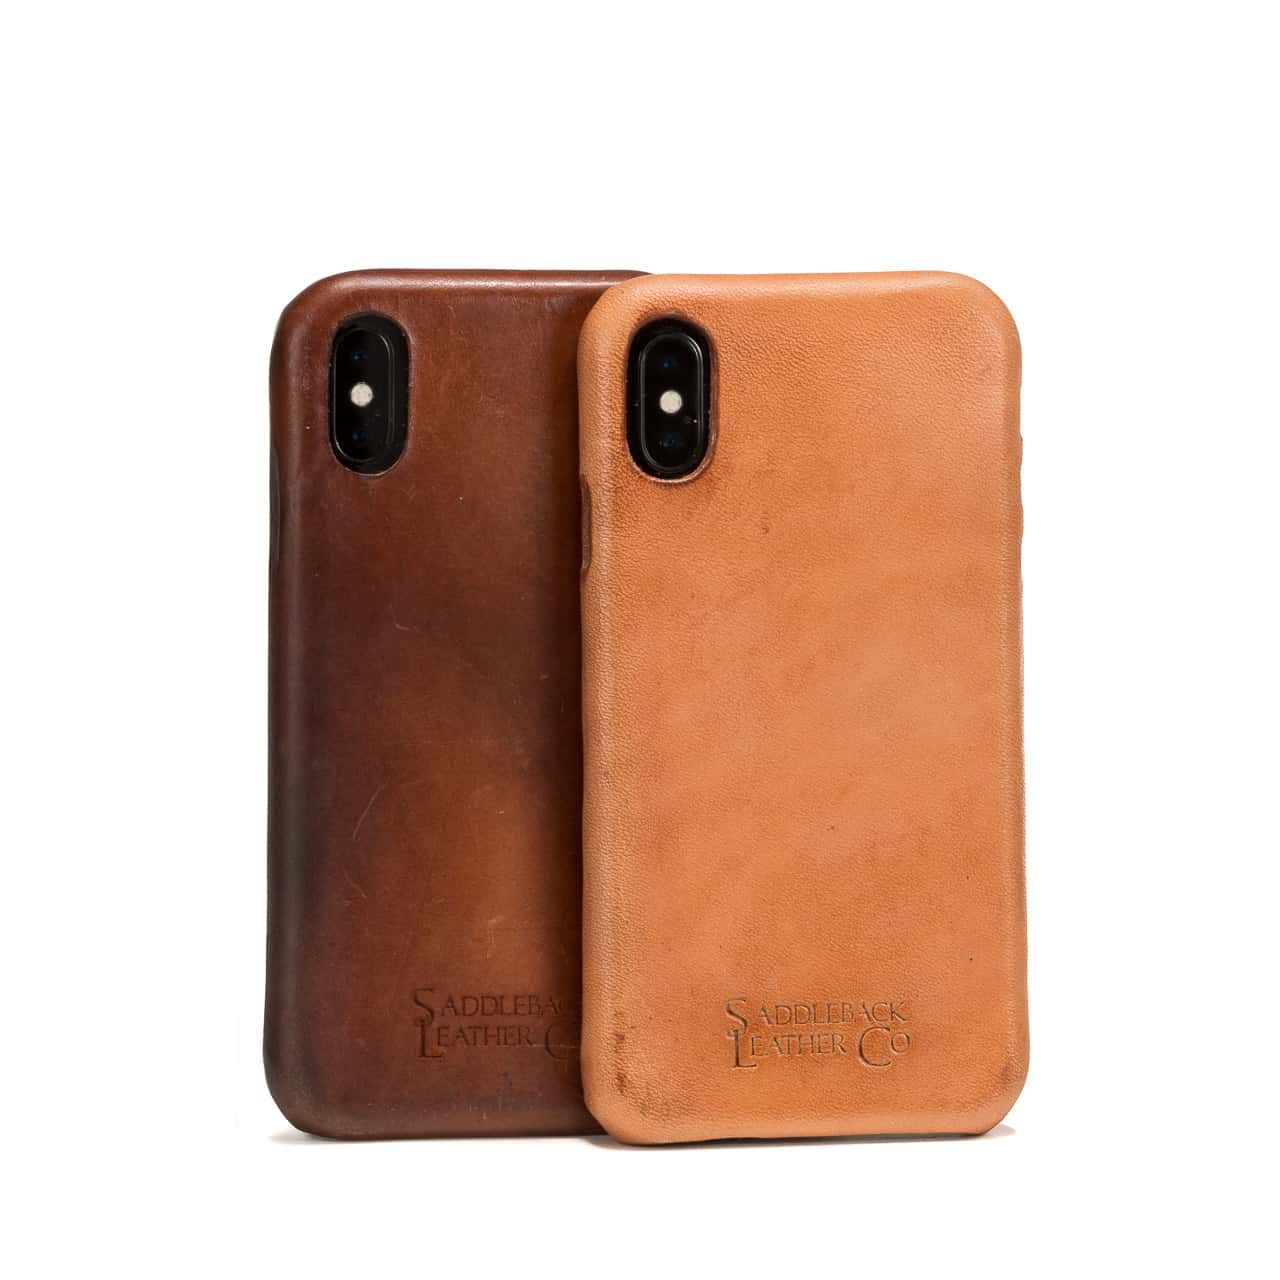 New and Patina'd Boot Leather iPhone Case from the Back Stair Stacked